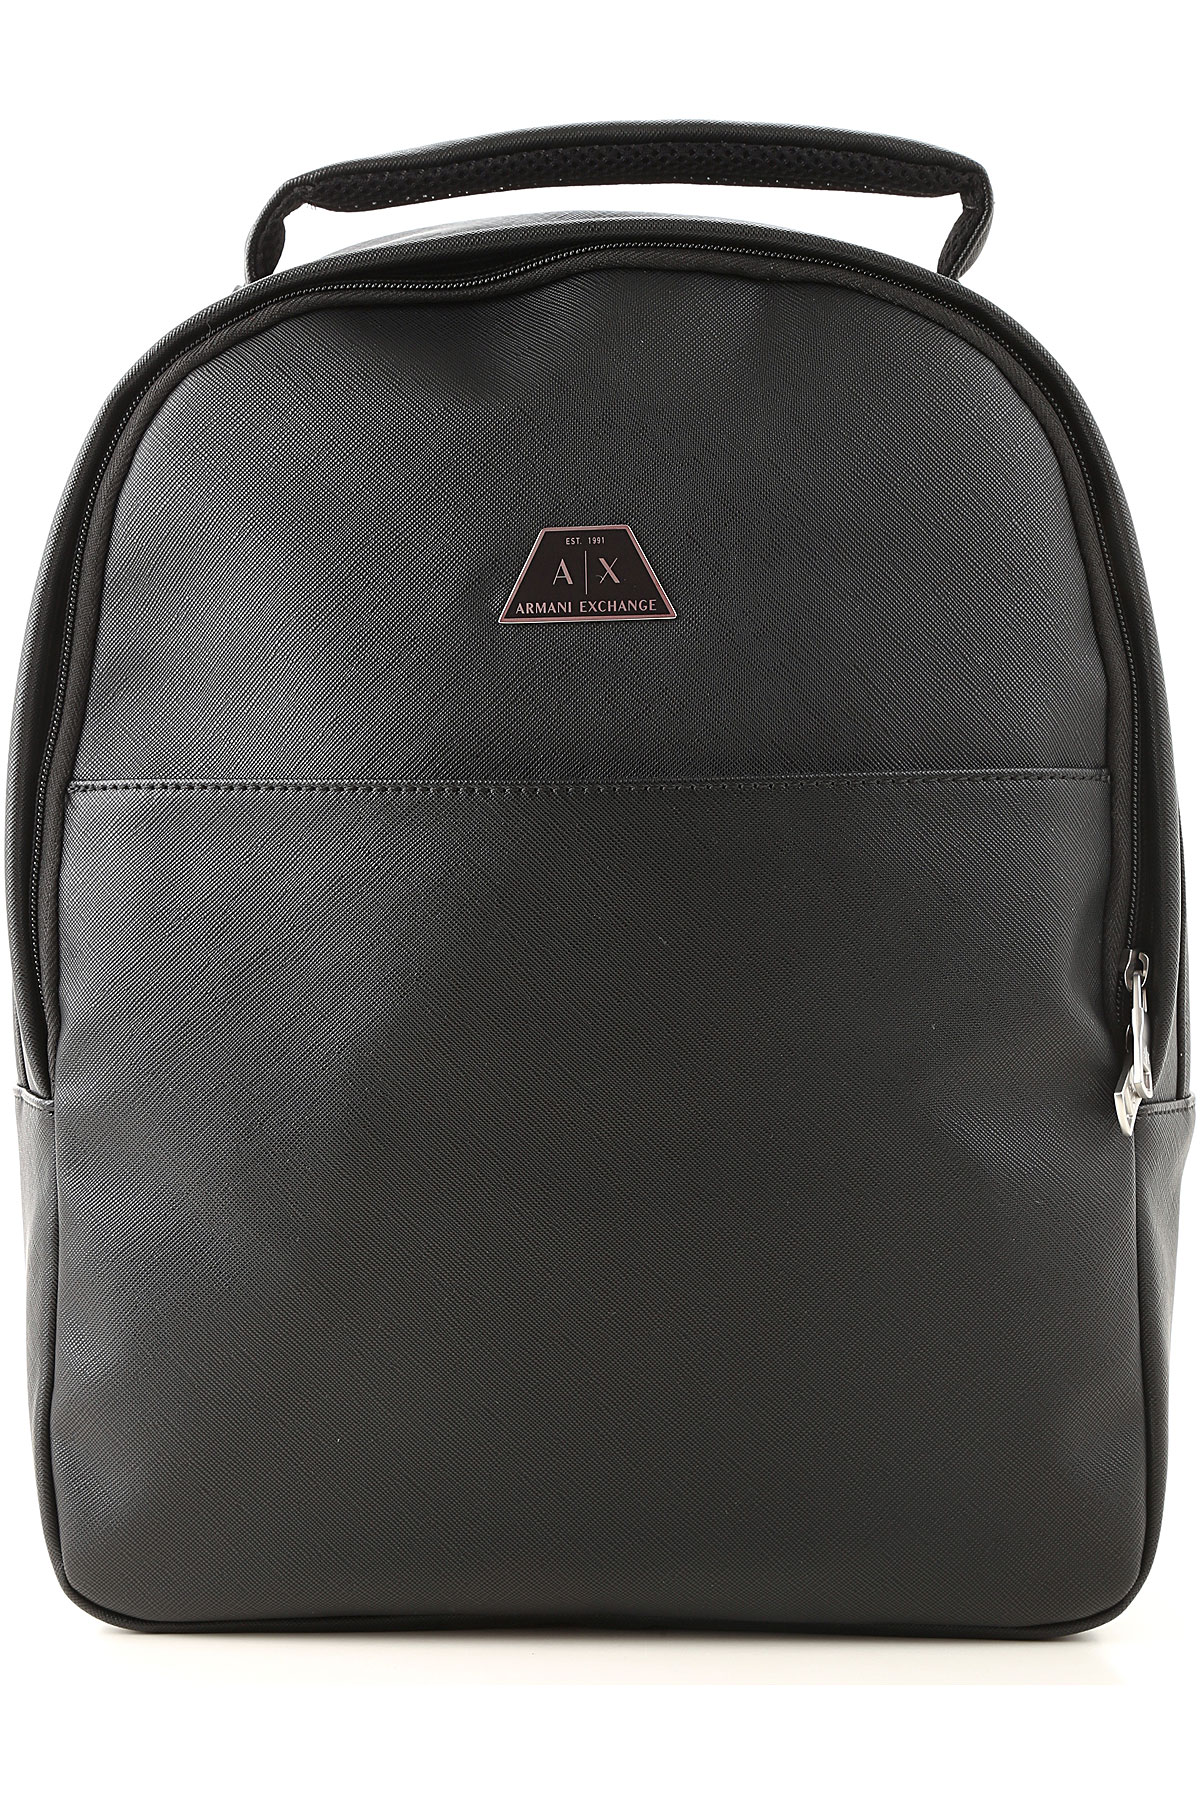 Armani Exchange Backpack for Men On Sale, Black, polyester, 2019